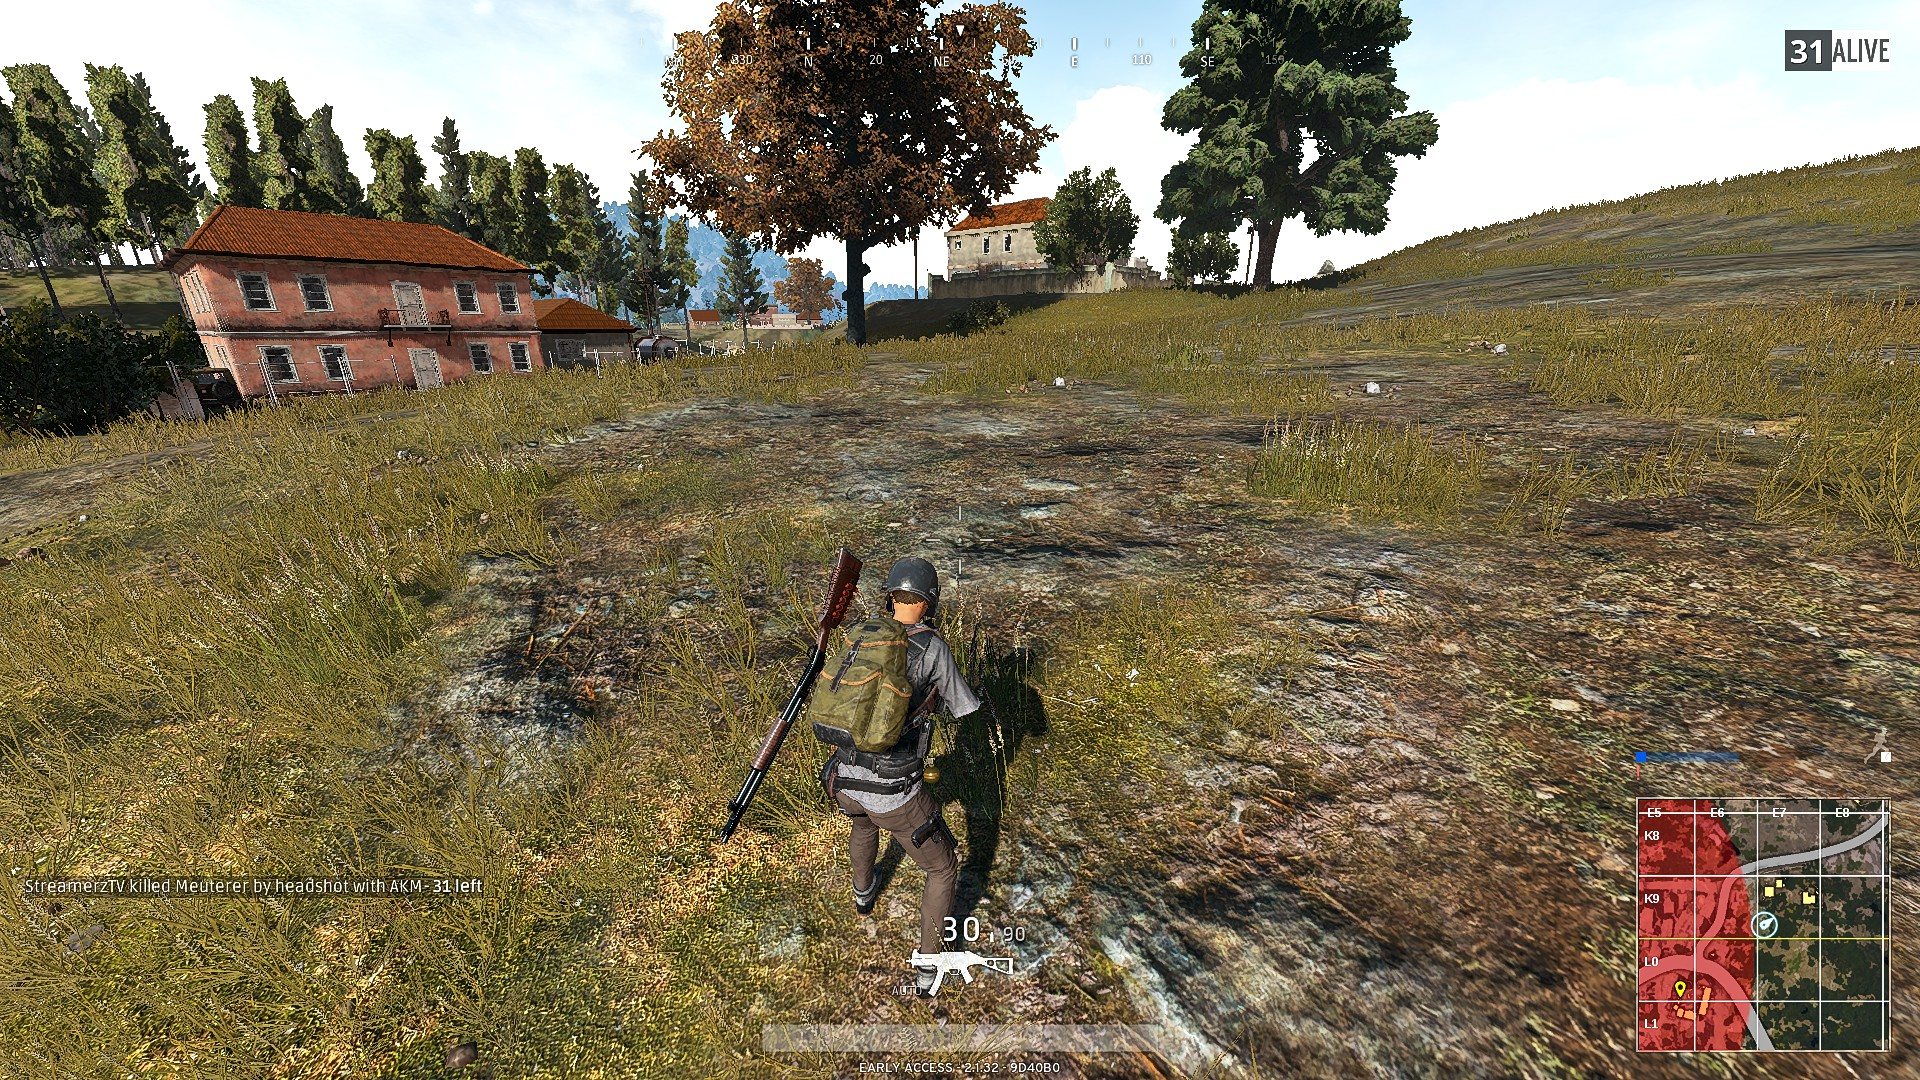 1920x1080 Playerunknowns Battlegrounds 5k Screenshot: PUBG Will Run At 60FPS If You Are Playing The Game On Xbox